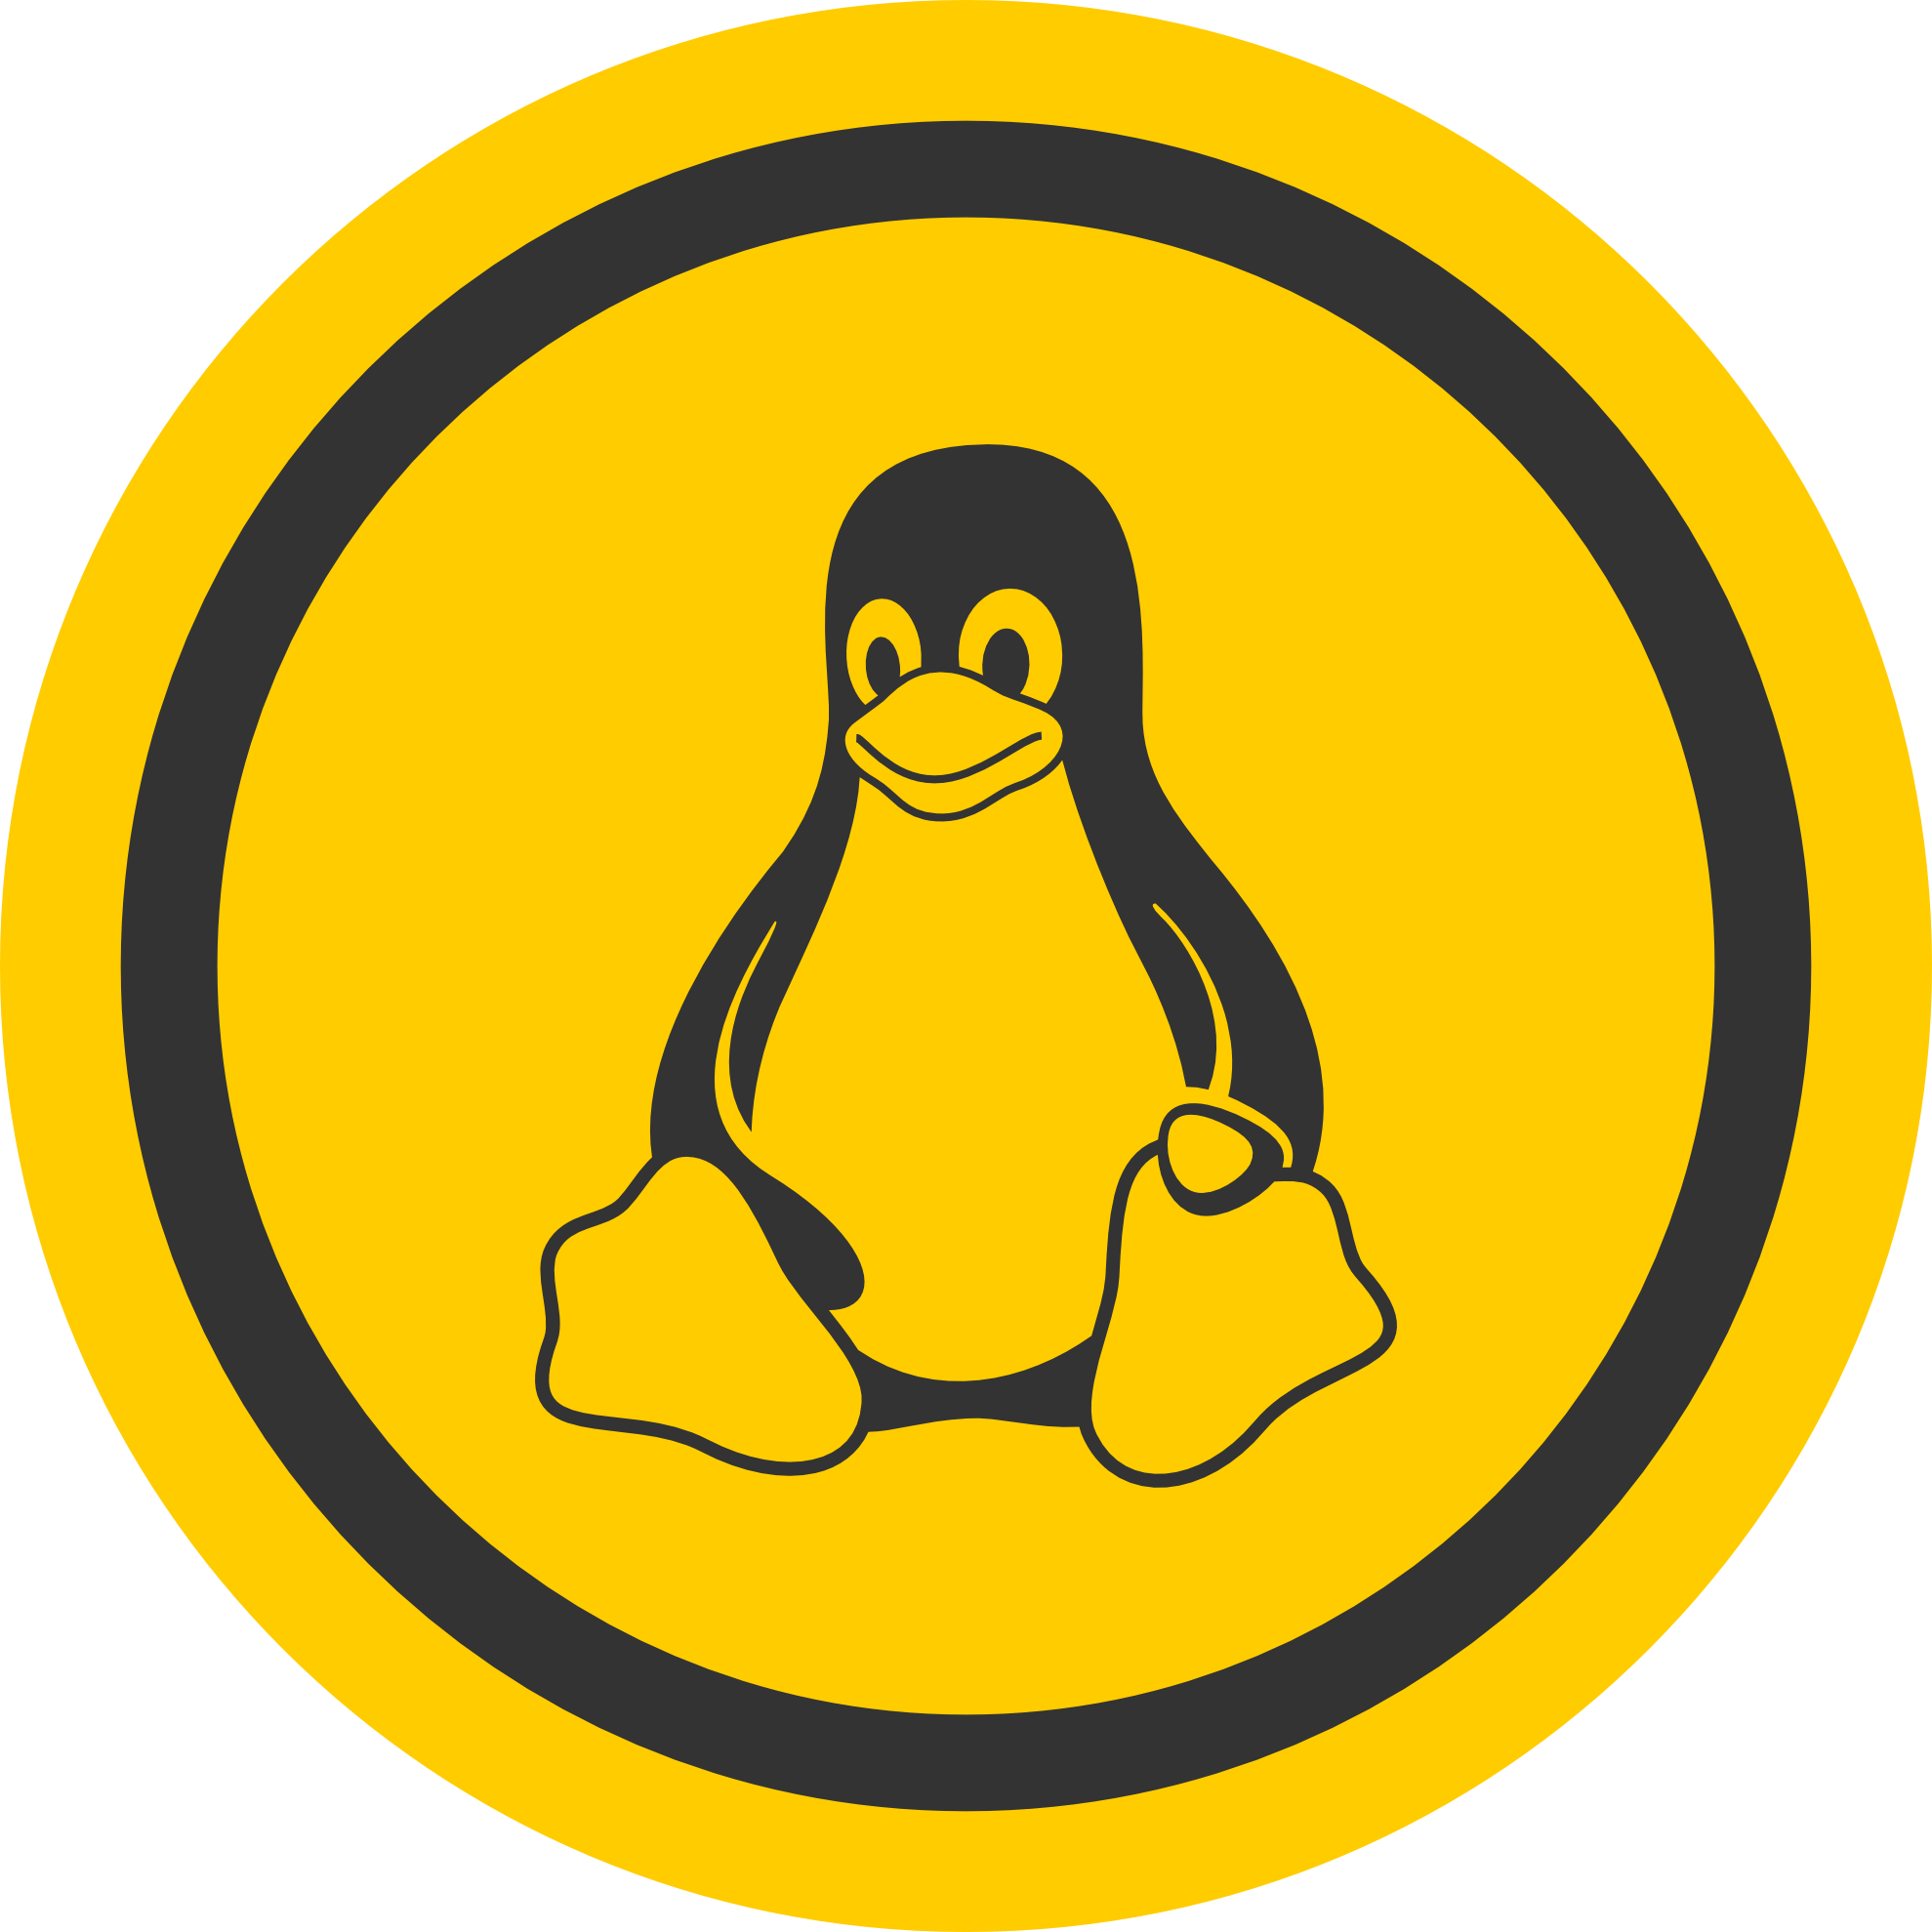 Tux Logo Operating System Linux Free Download Image PNG Image